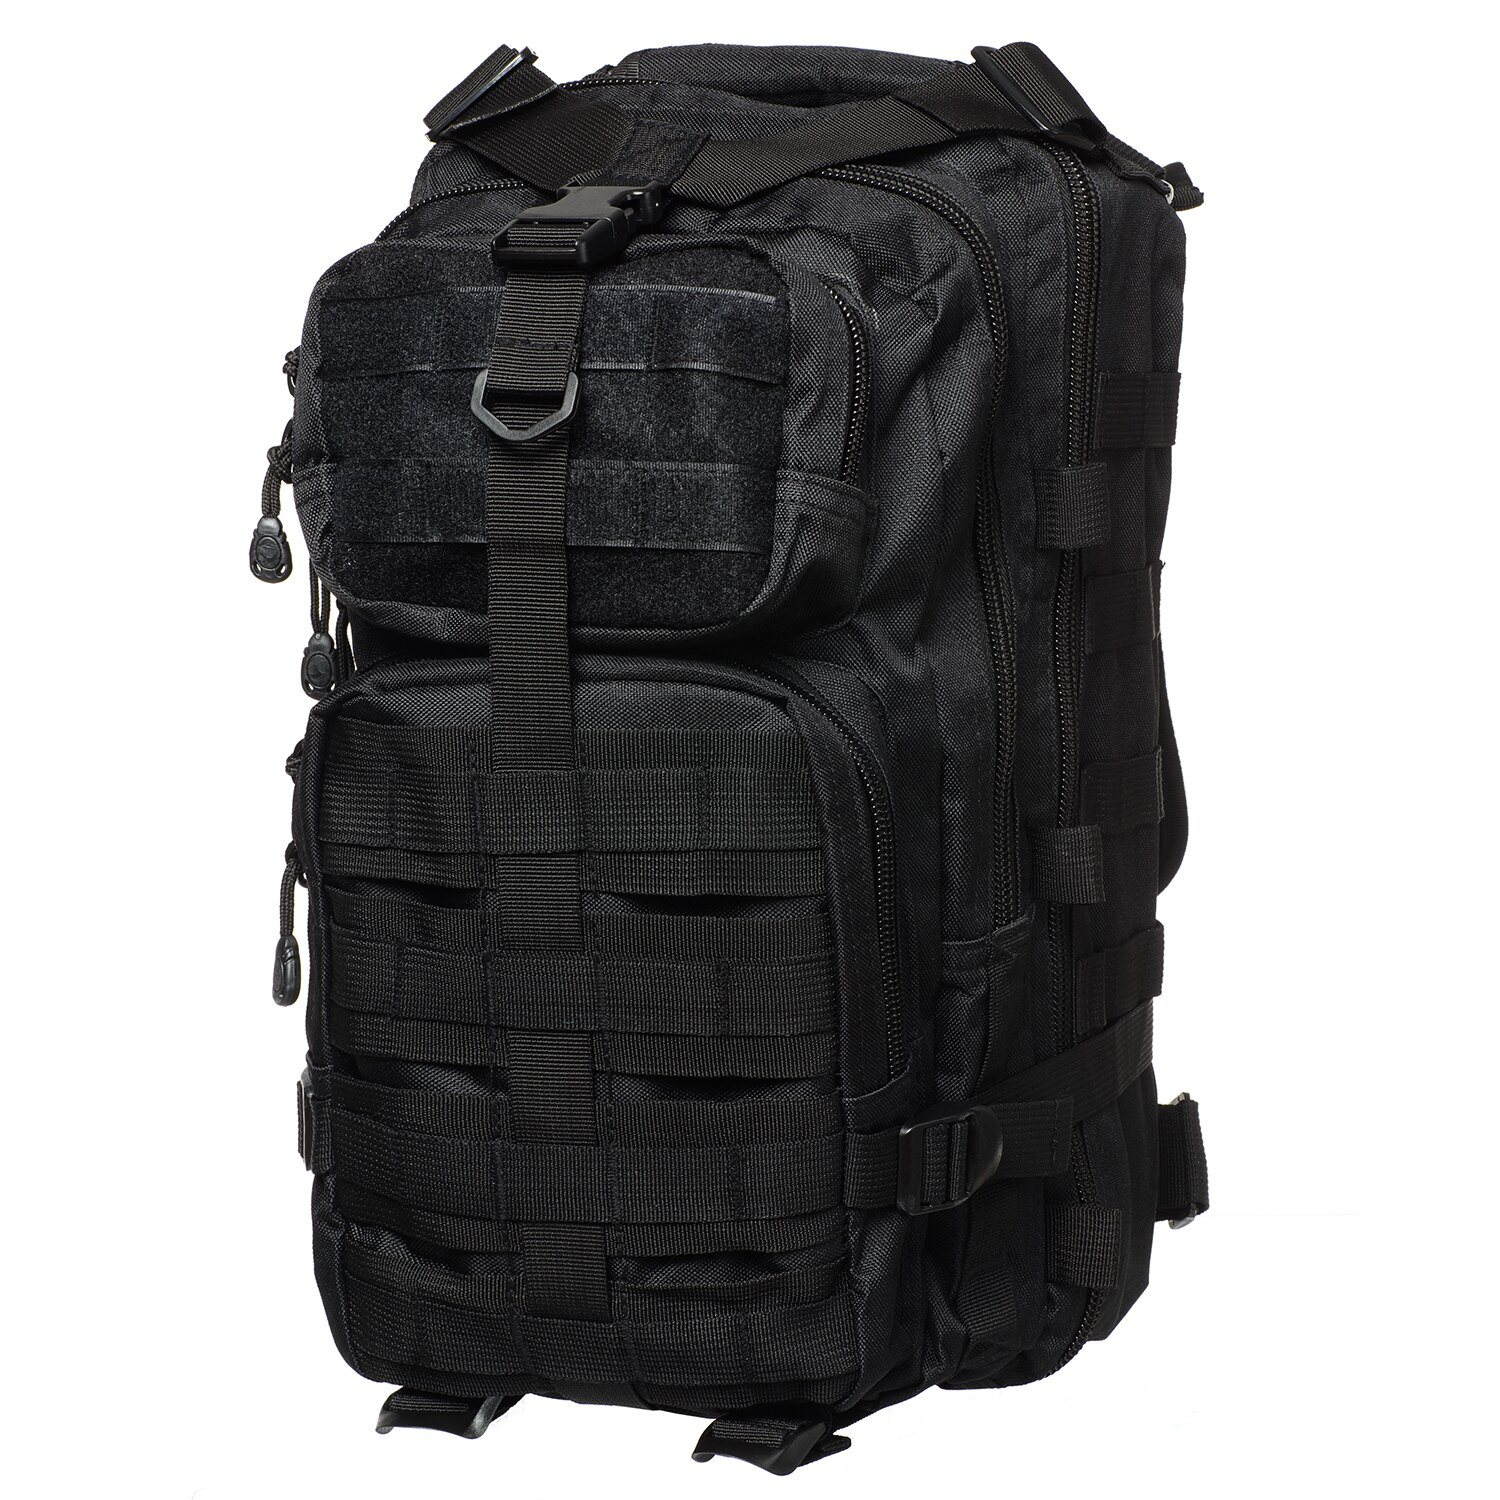 Every Day Carry Military Tactical Large Army 3-Day Assault MOLLE Outdoor Backpack for Hiking - Black 0